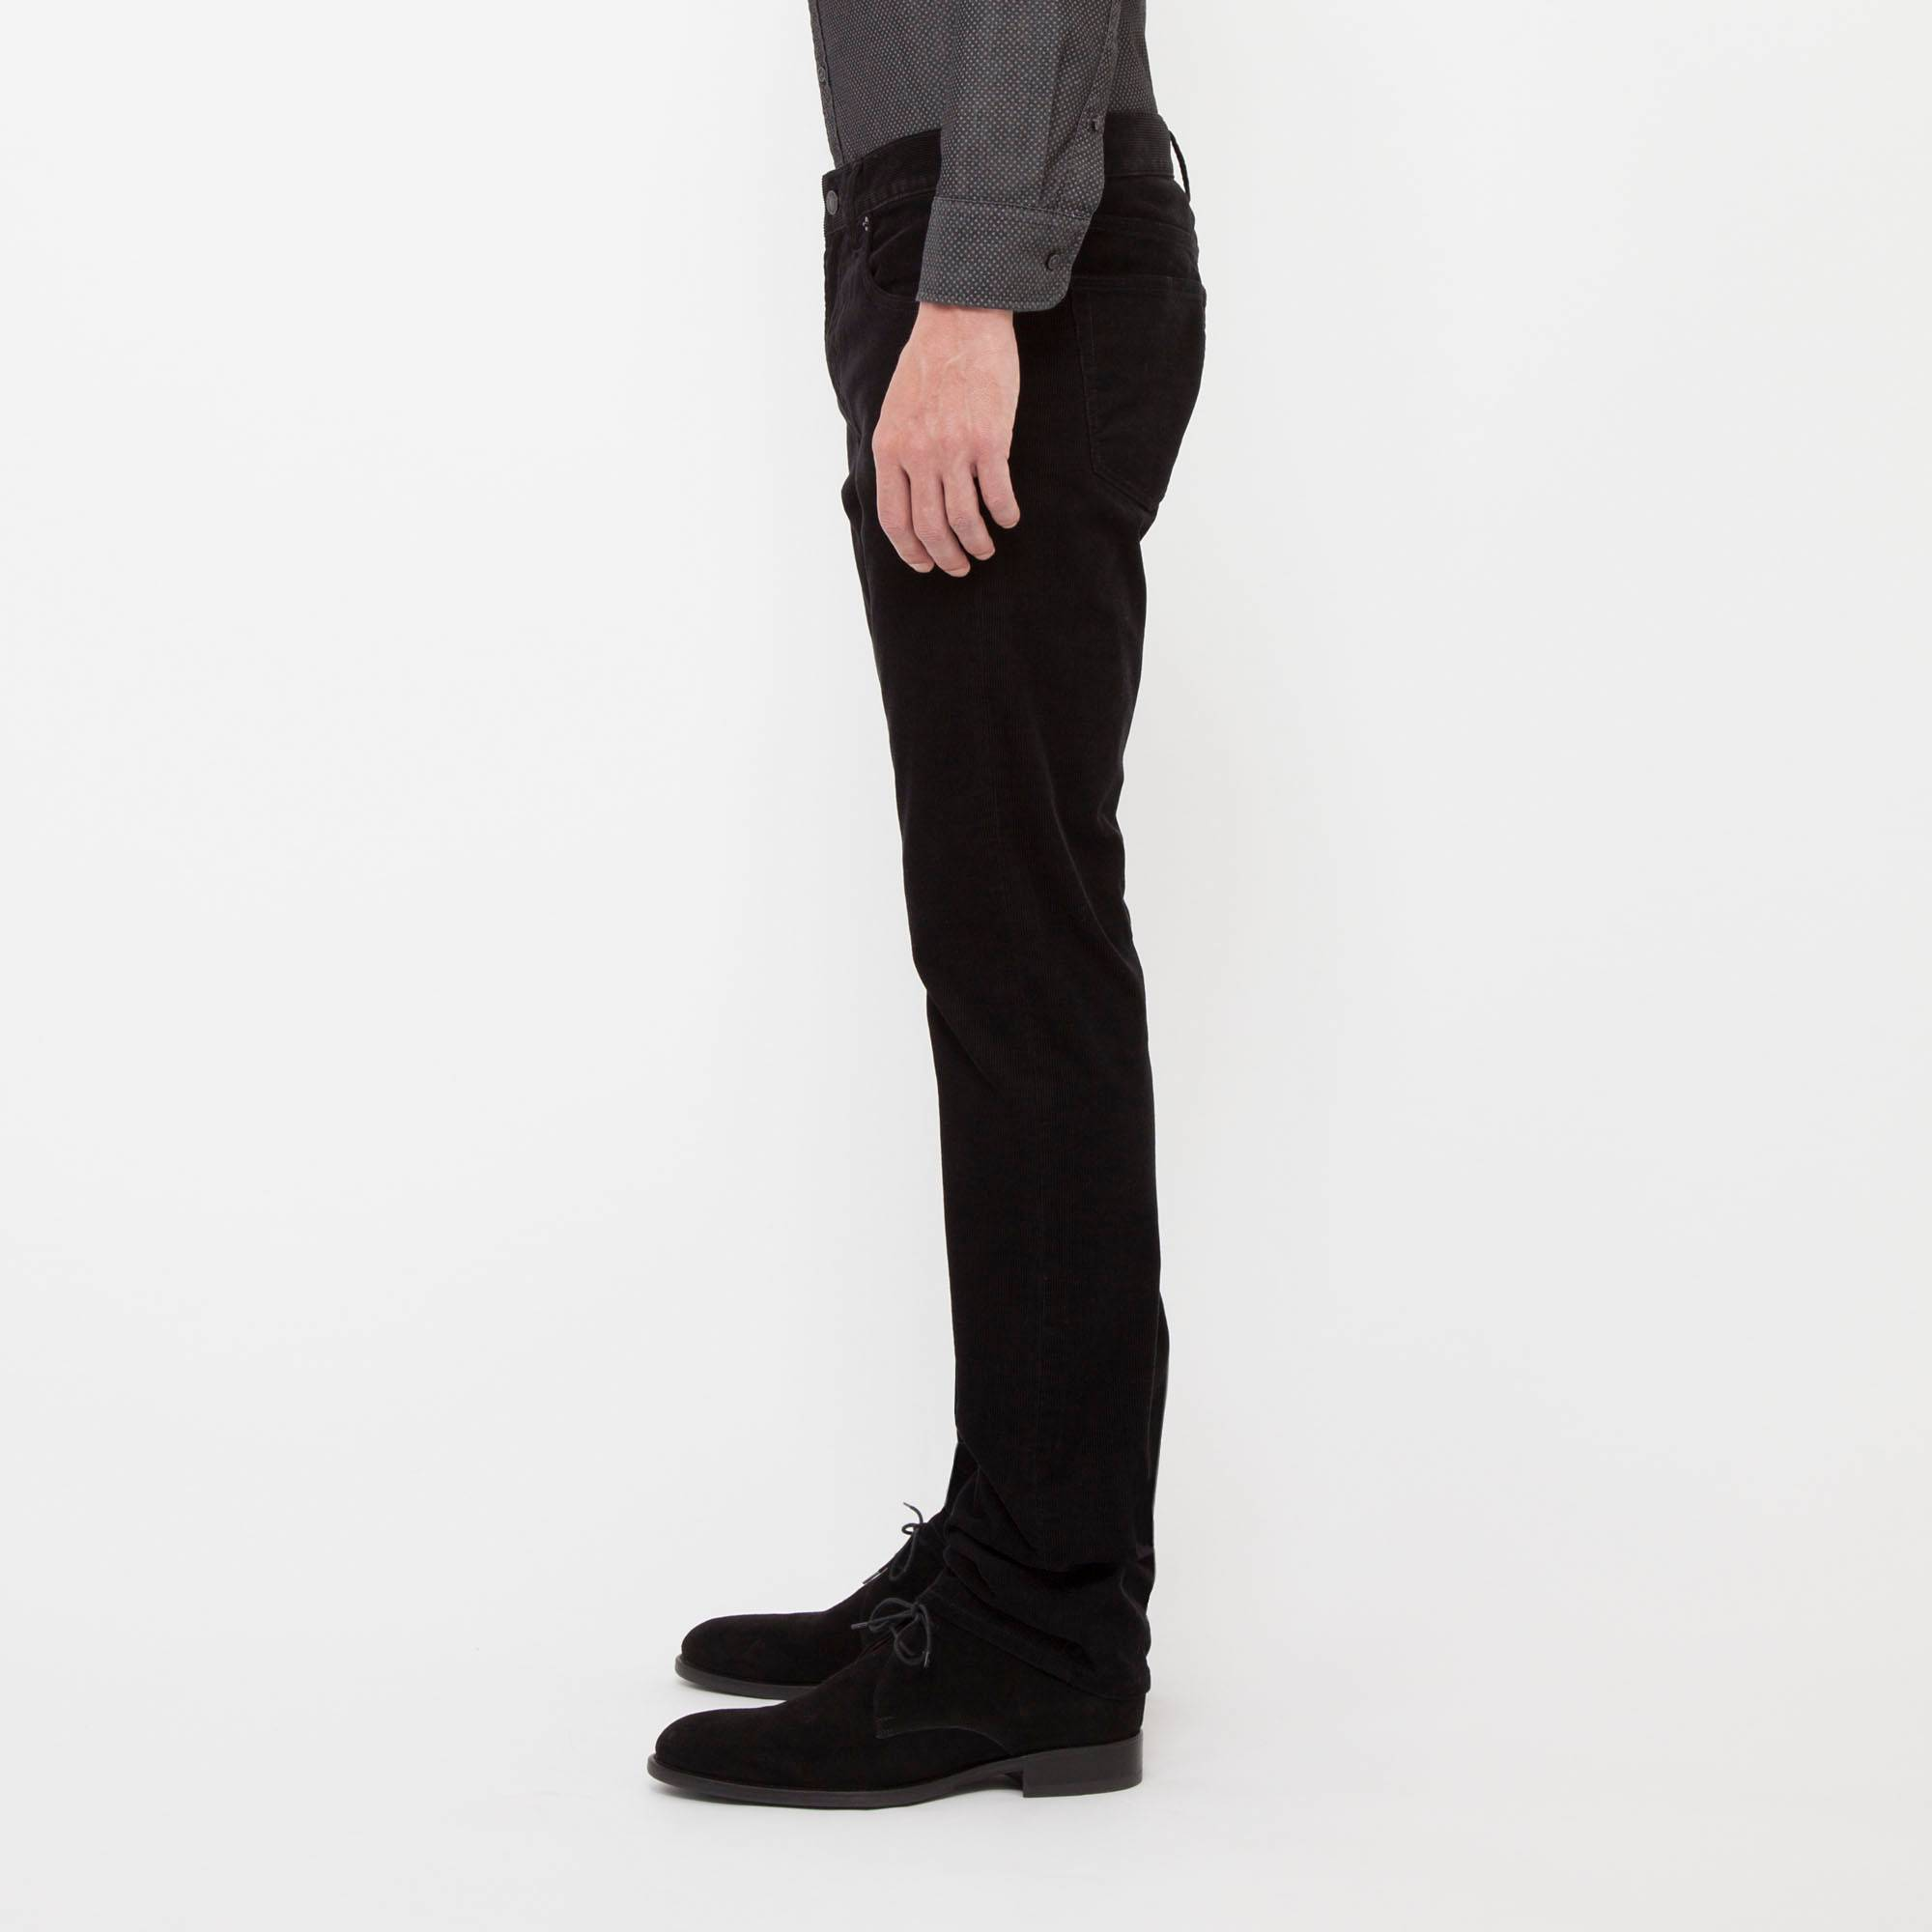 black corduroy pants mens - Pi Pants